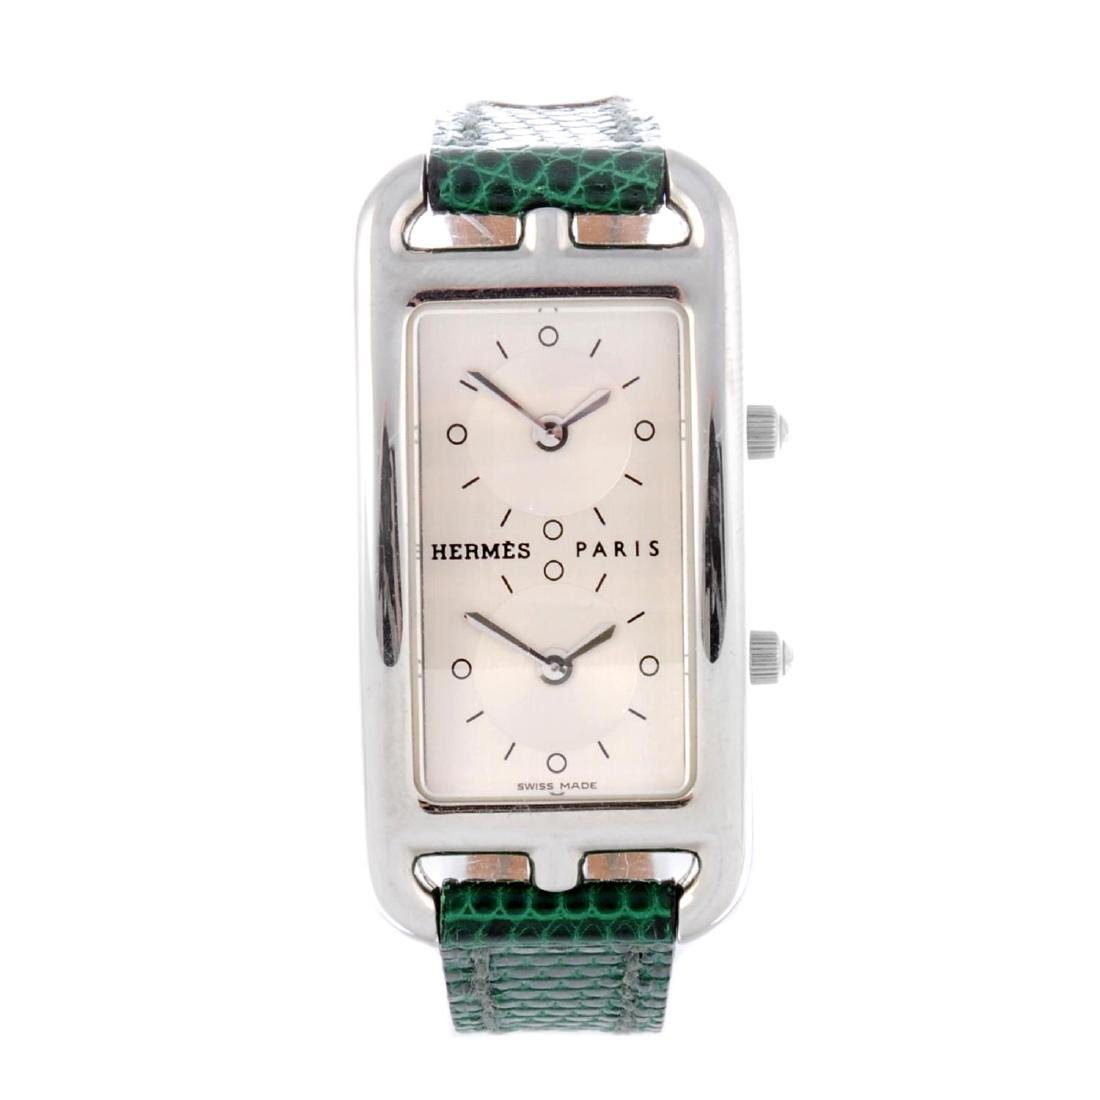 HERMÈS - a lady's Cape Cod Deux Zones wrist watch.